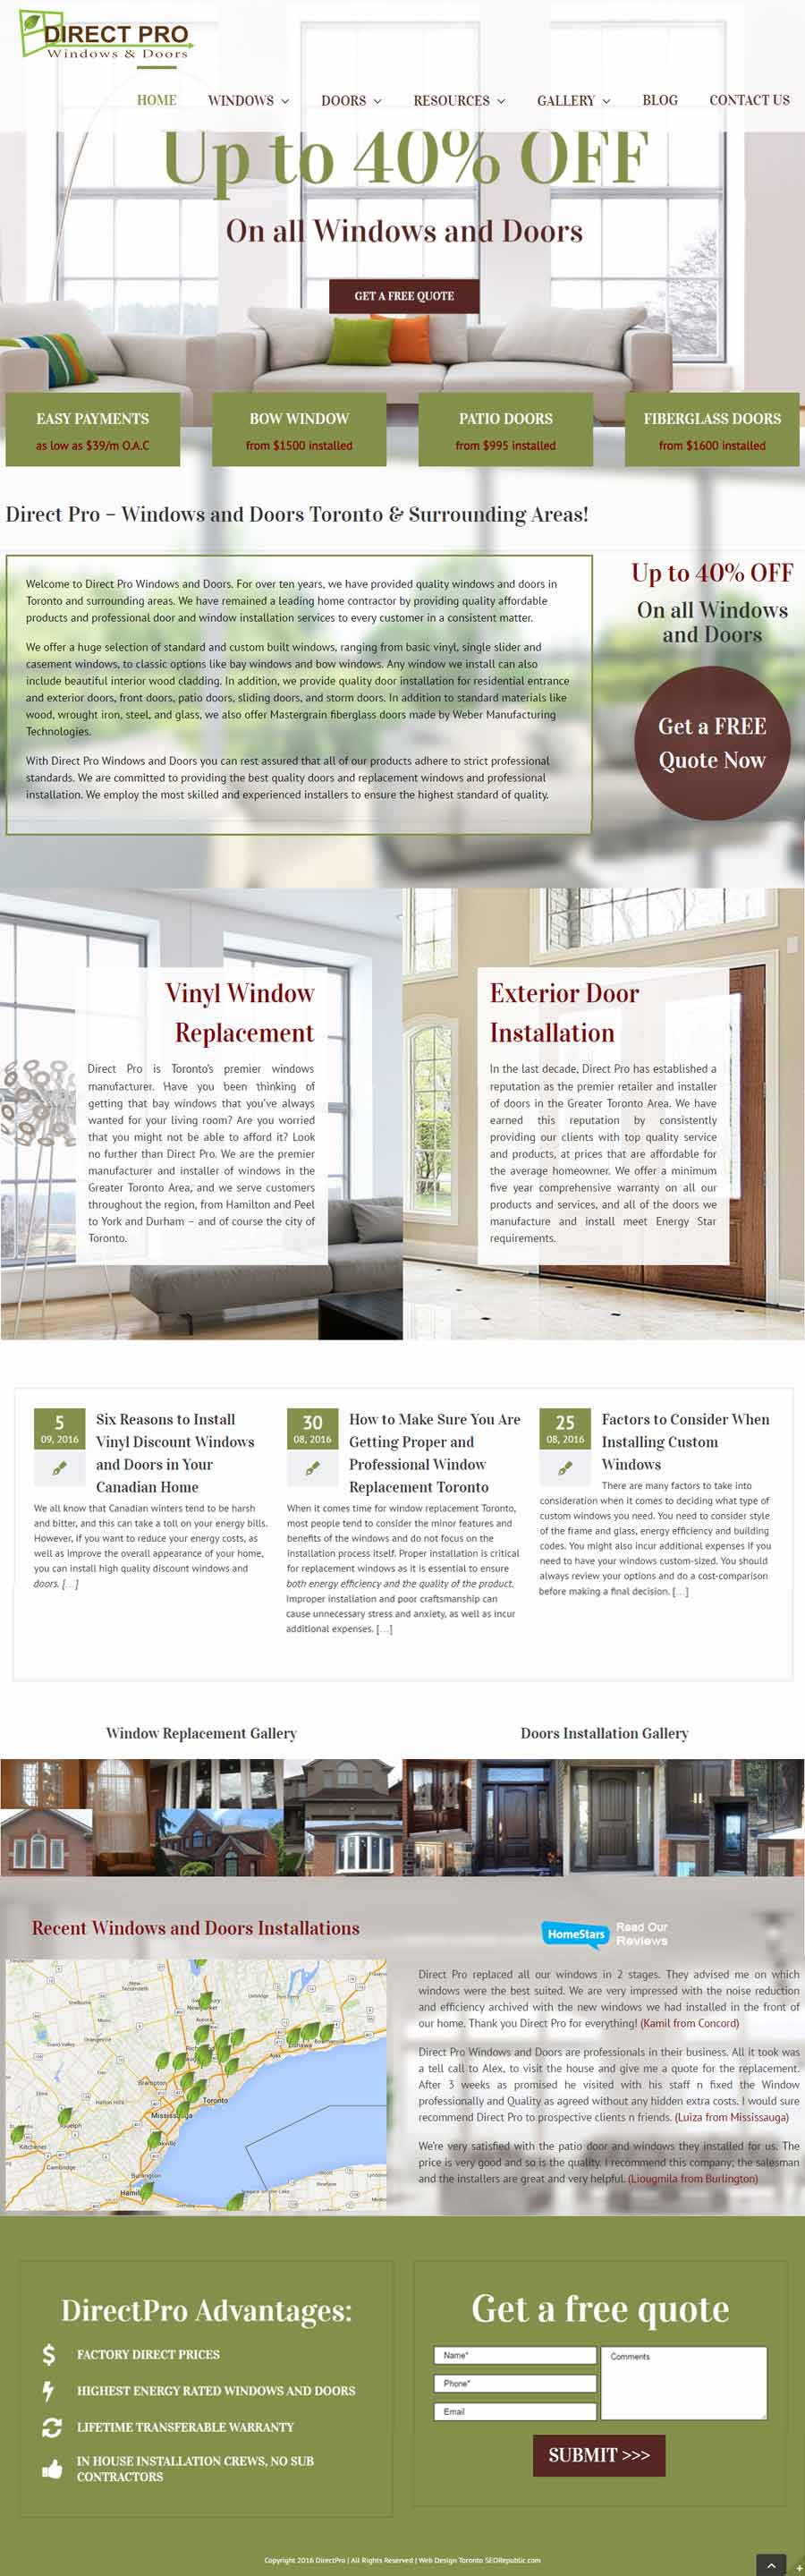 Web-design Toronto Seorepublic Direct Pro Windows and Doors